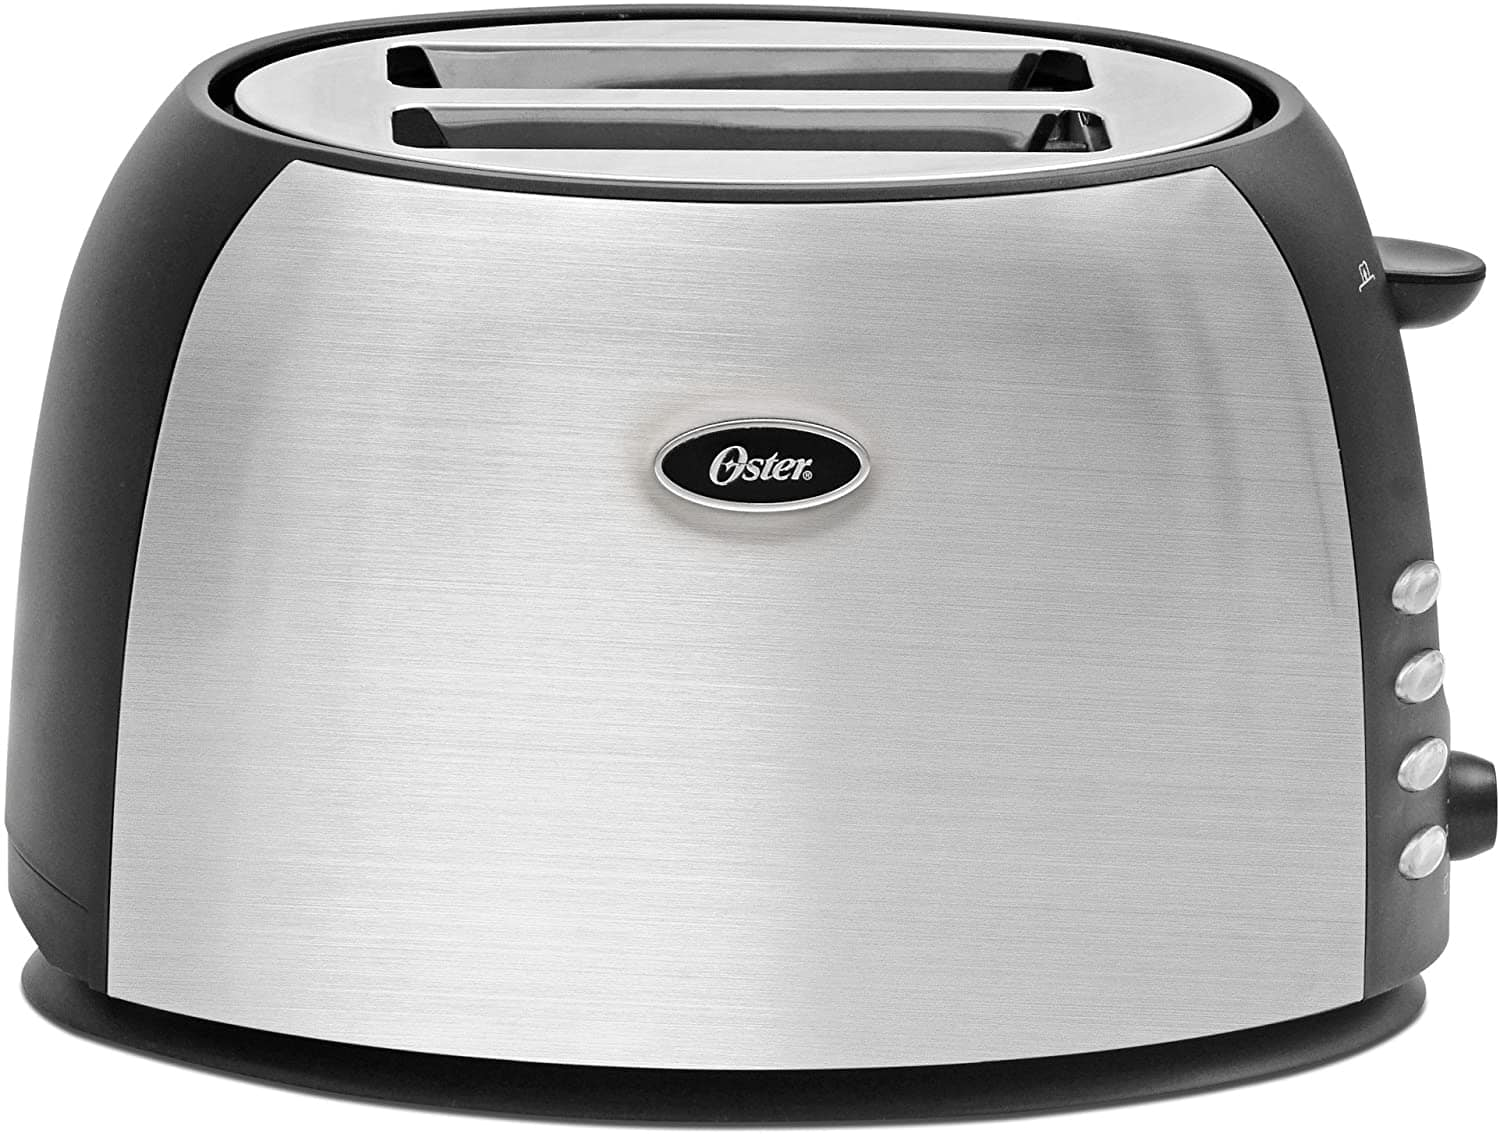 Woot, Oster 2 Slice Toaster, Brushed Stainless, $17.99, free shipping for Prime members